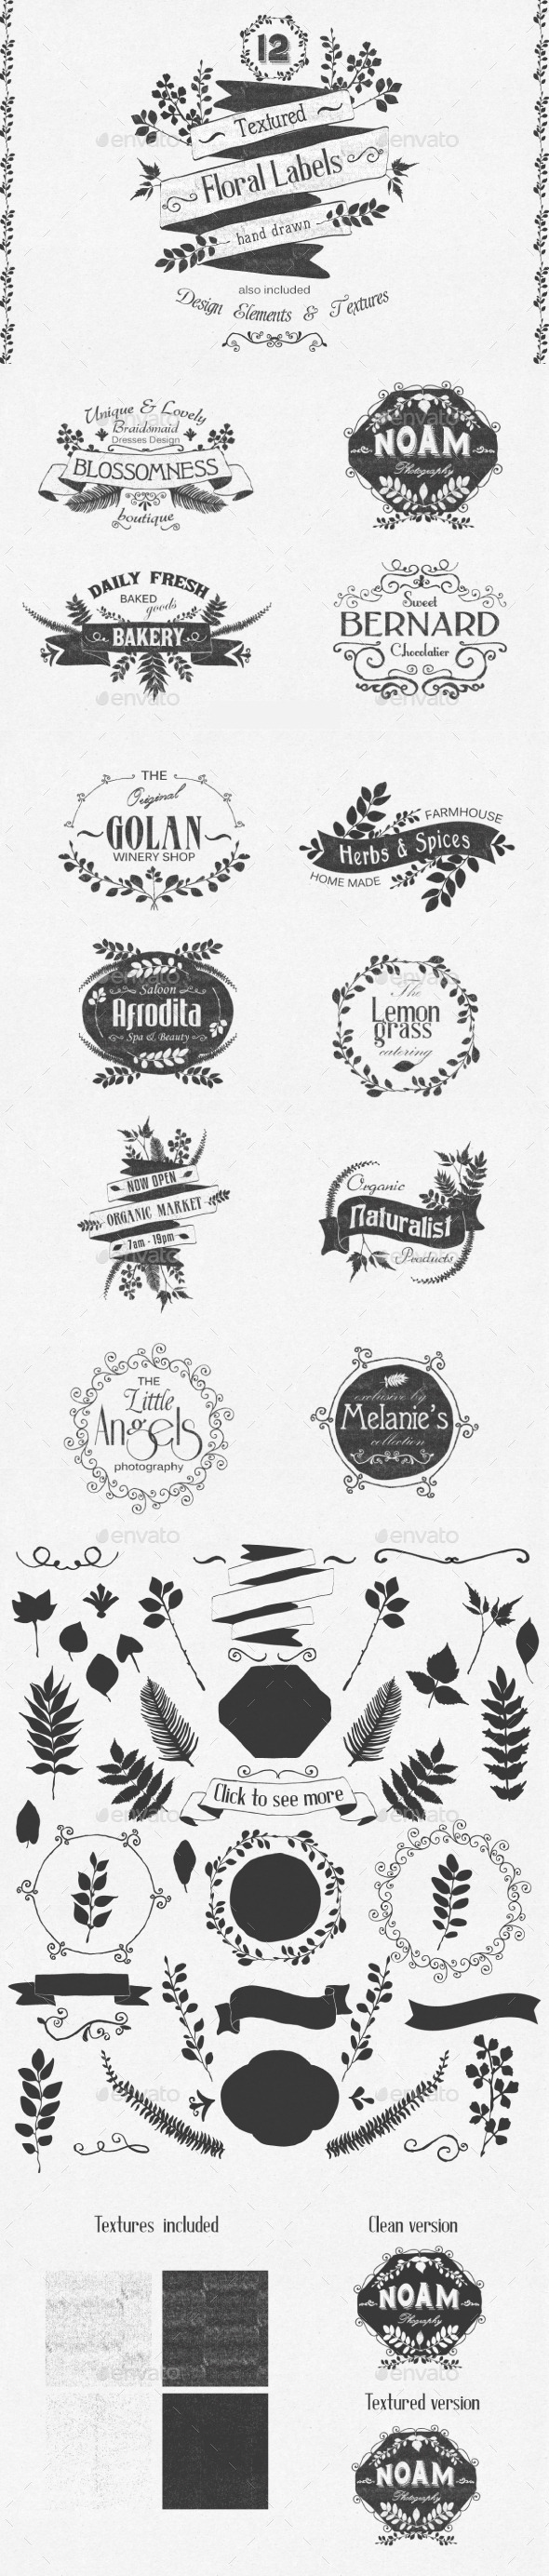 Hand Drawn Floral Labels and Design Elements - Web Elements Vectors